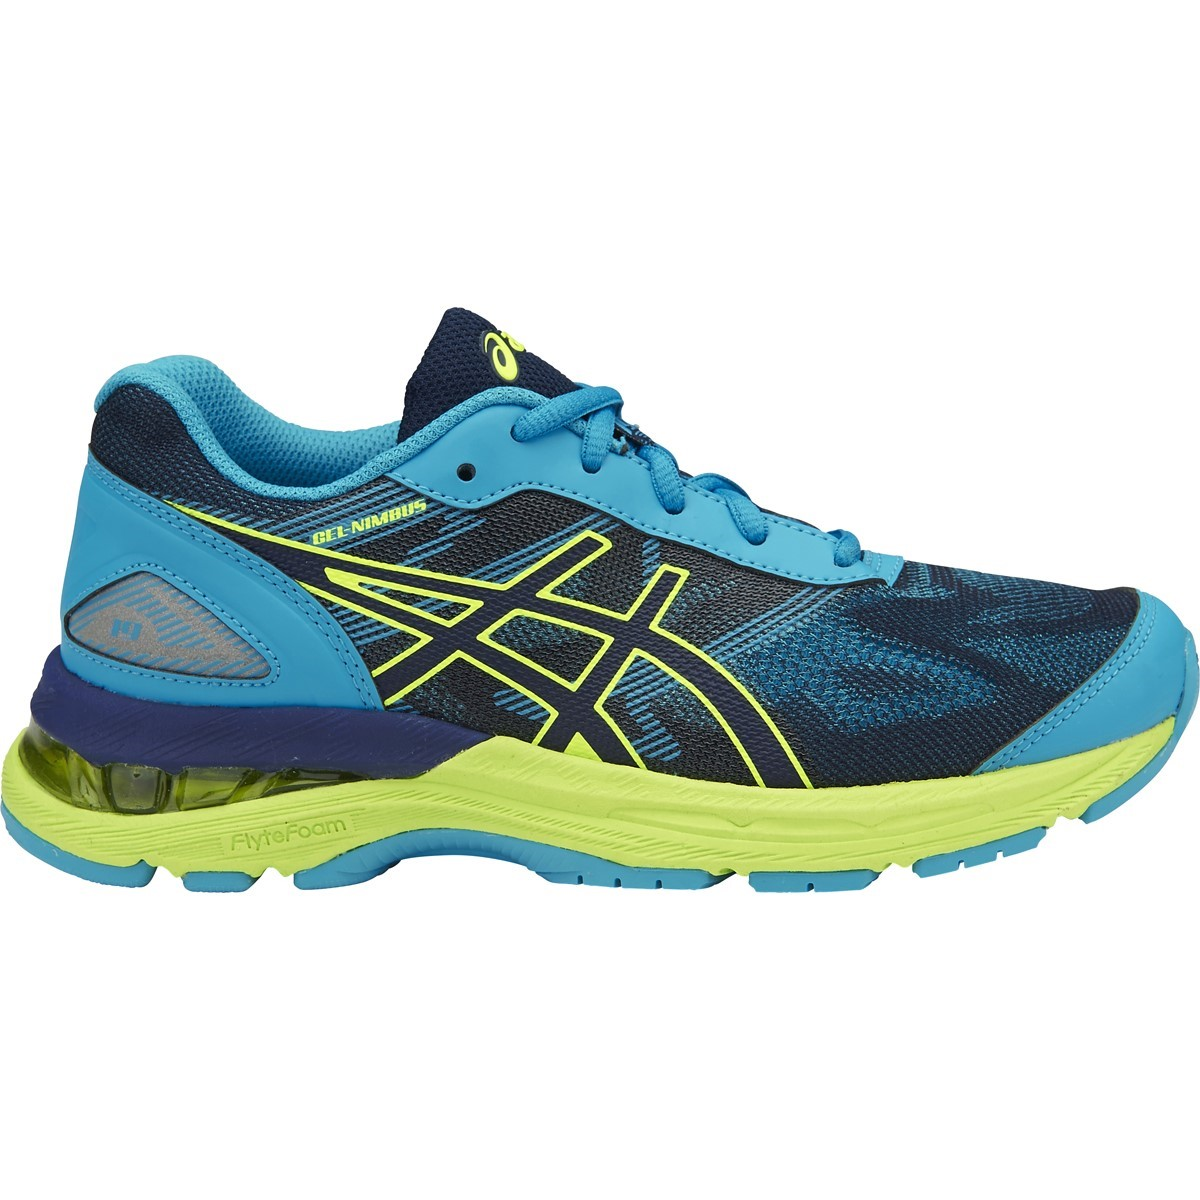 asics shoes price in bangladesh 659354